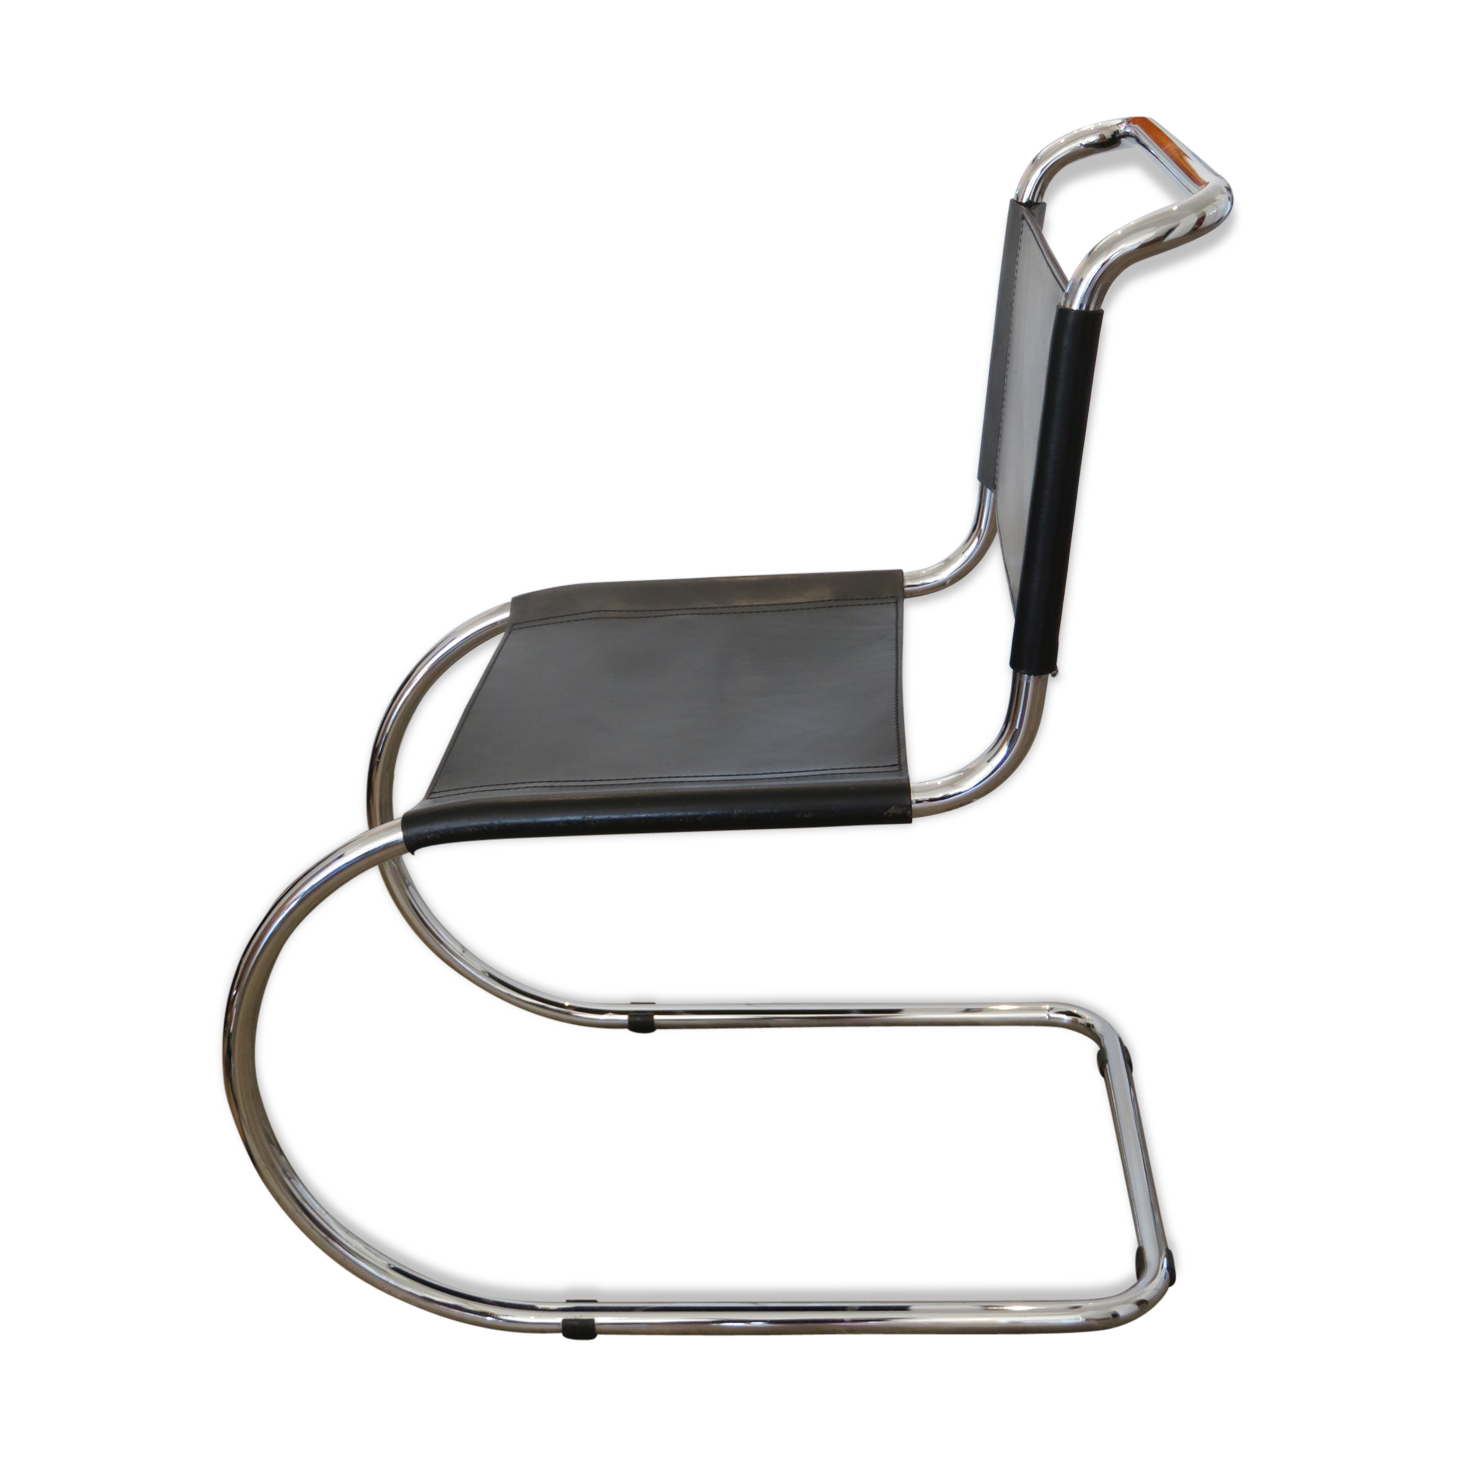 Merveilleux Chair Sled Vintage MR10 By Ludwig Mies Van Der Rohe For Thonet   Metal    Black   Vintage   Q40tdXt